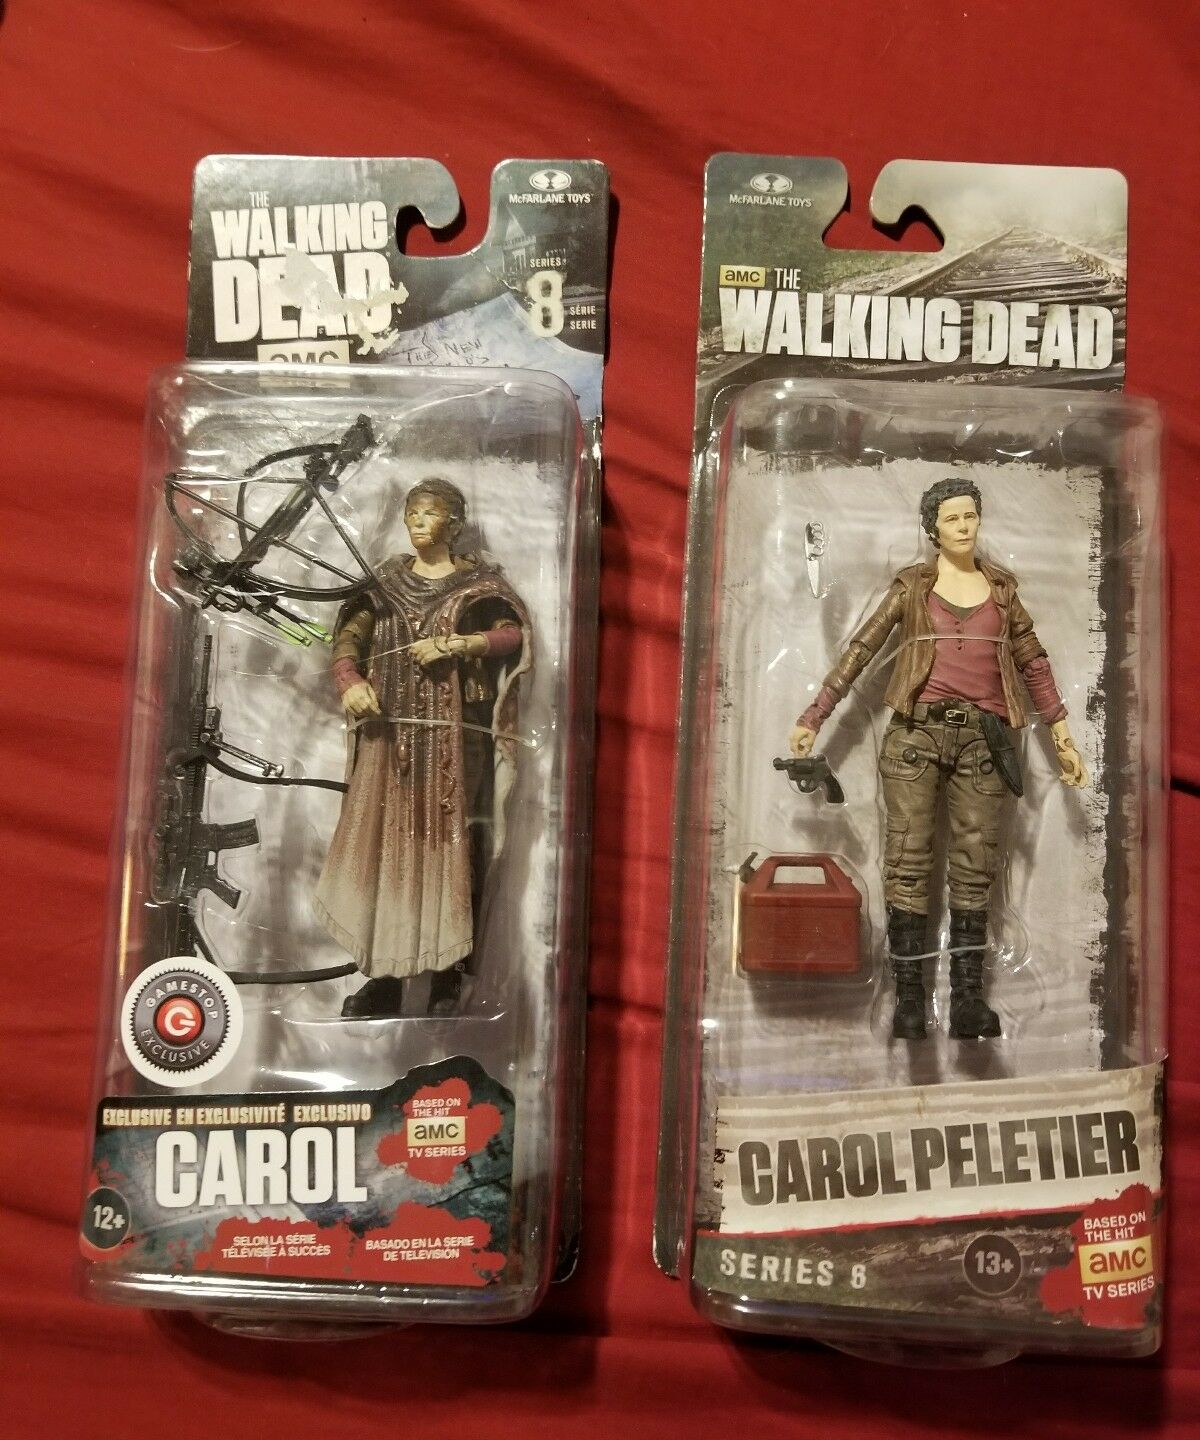 The Walking McFARLANE Dead SERIES 6 McFARLANE Walking CAROL PELETIER & GAMESTOP EXCLUSIVE CAROL 86d53b